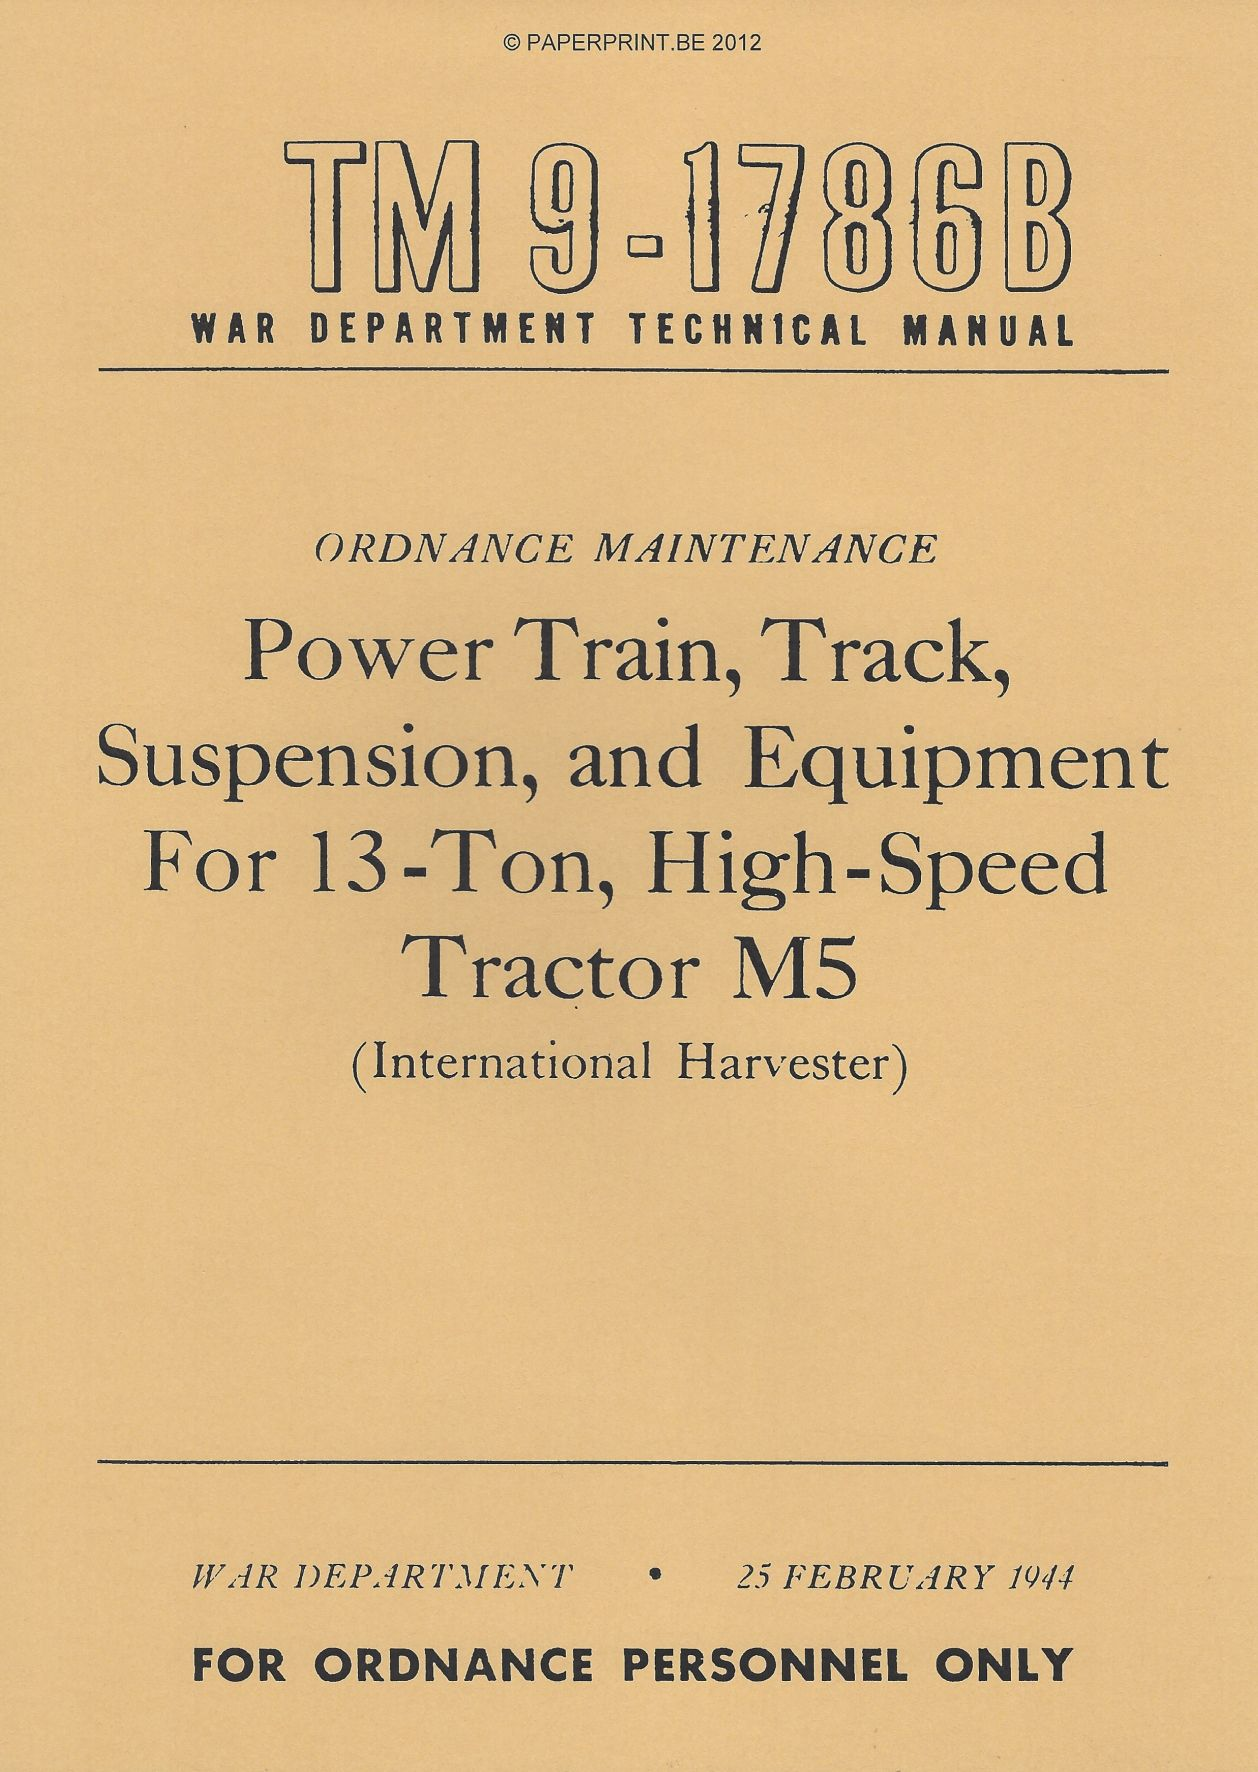 TM 9-1786B US POWER TRAIN, TRACK, SUSPENSION, AND EQUIPMENT FOR 13-TON, HIGH-SPEED TRACTOR M5